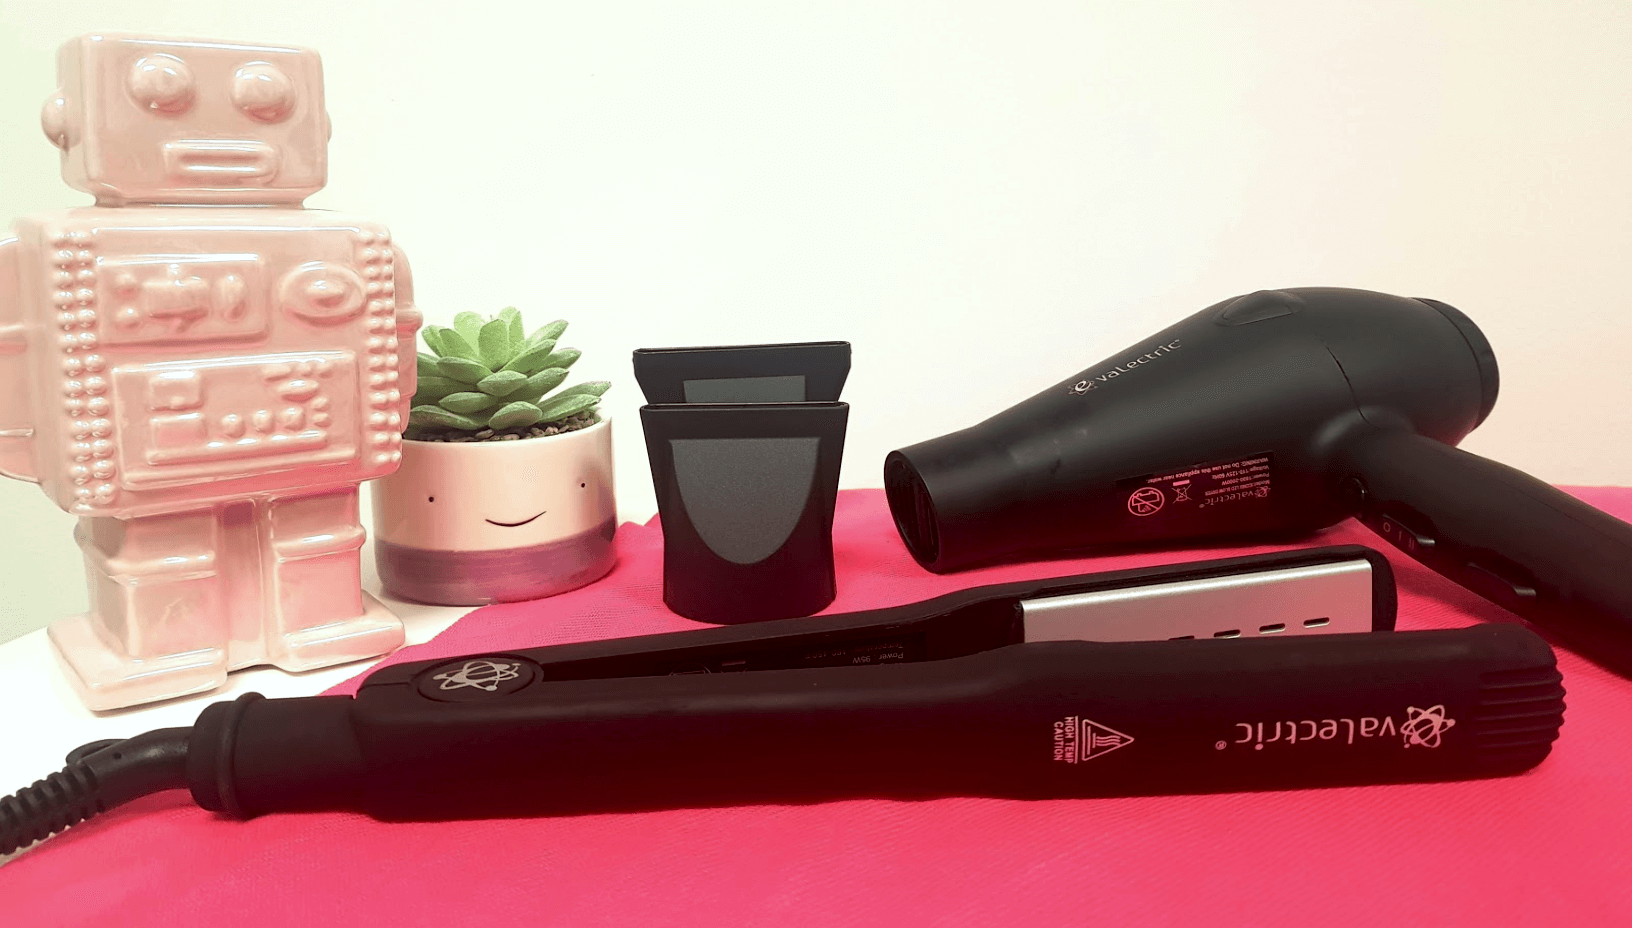 My Evalectric Review: Iconic LED Blow Dryer and Hair